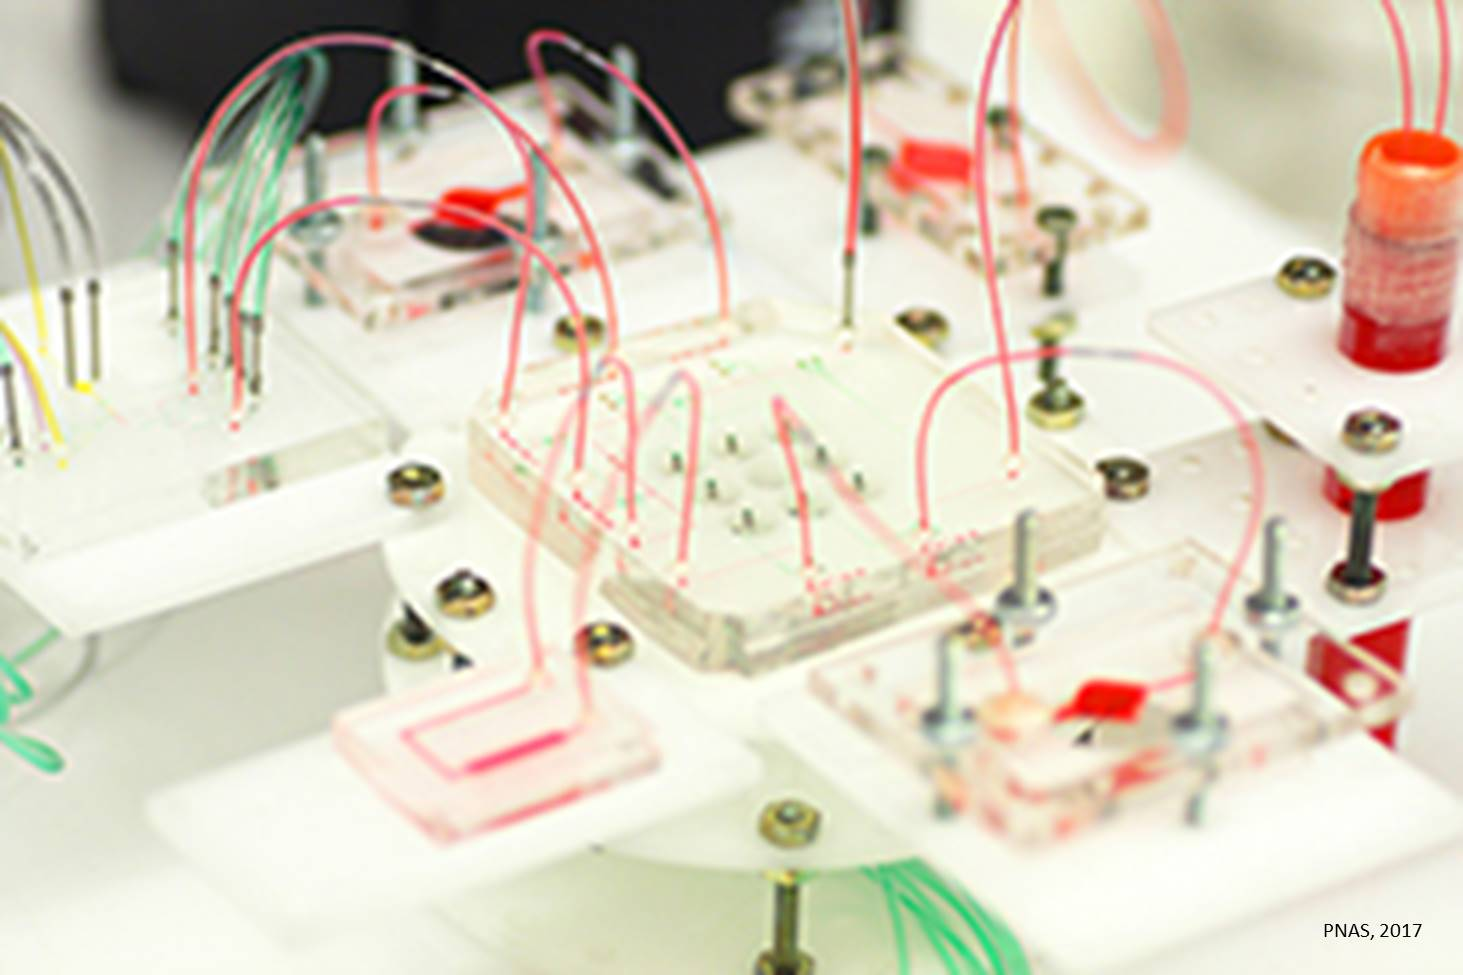 Multisensor-integrated organs-on-chips platform